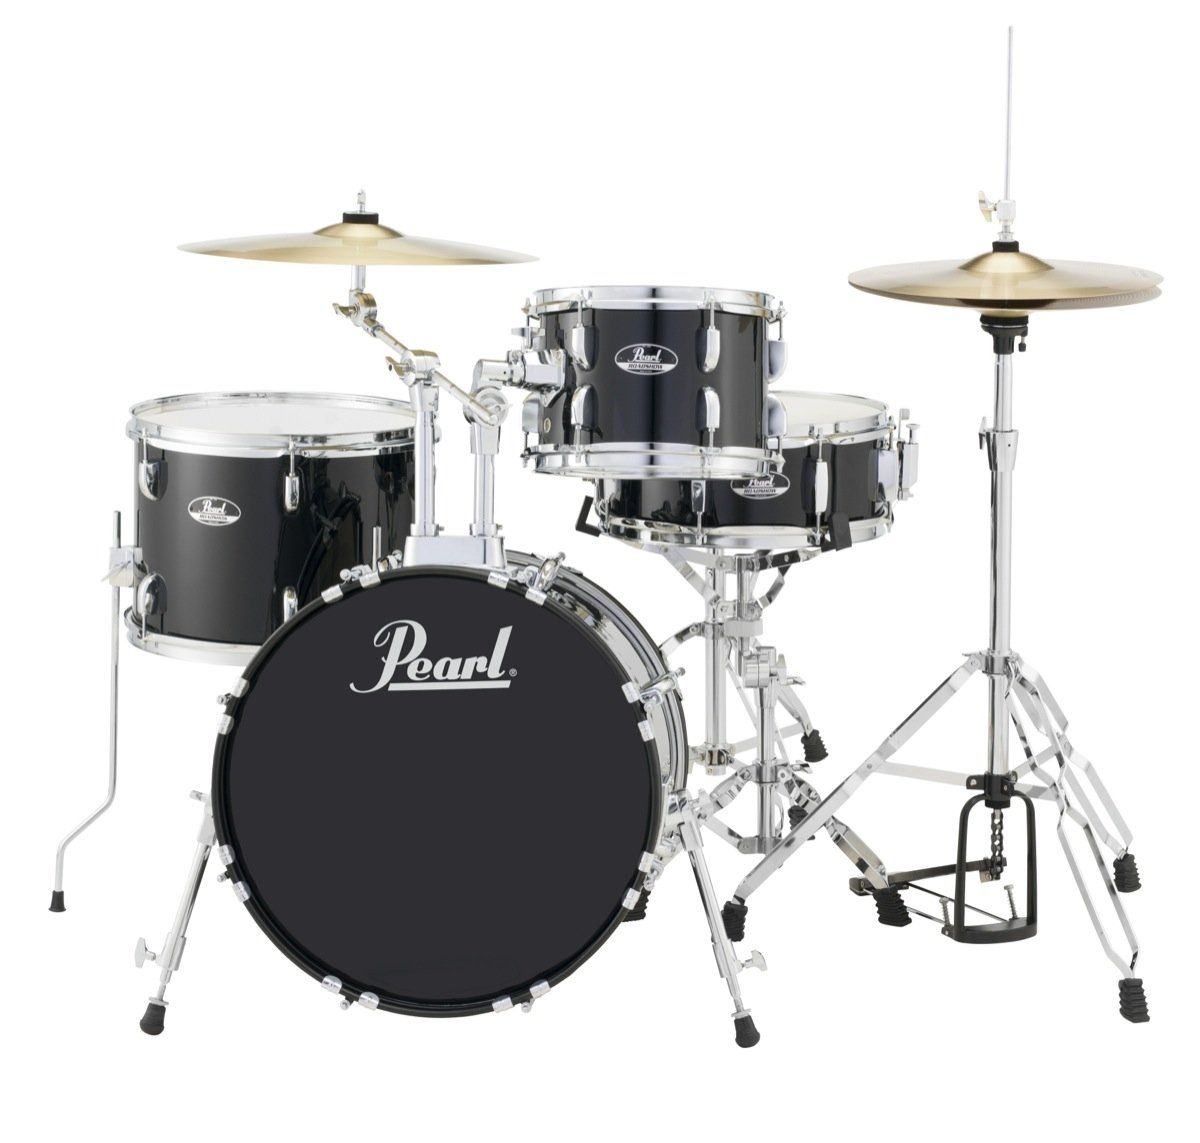 Pearl Roadshow 4-piece Complete Drum Set with Cymbals - Black